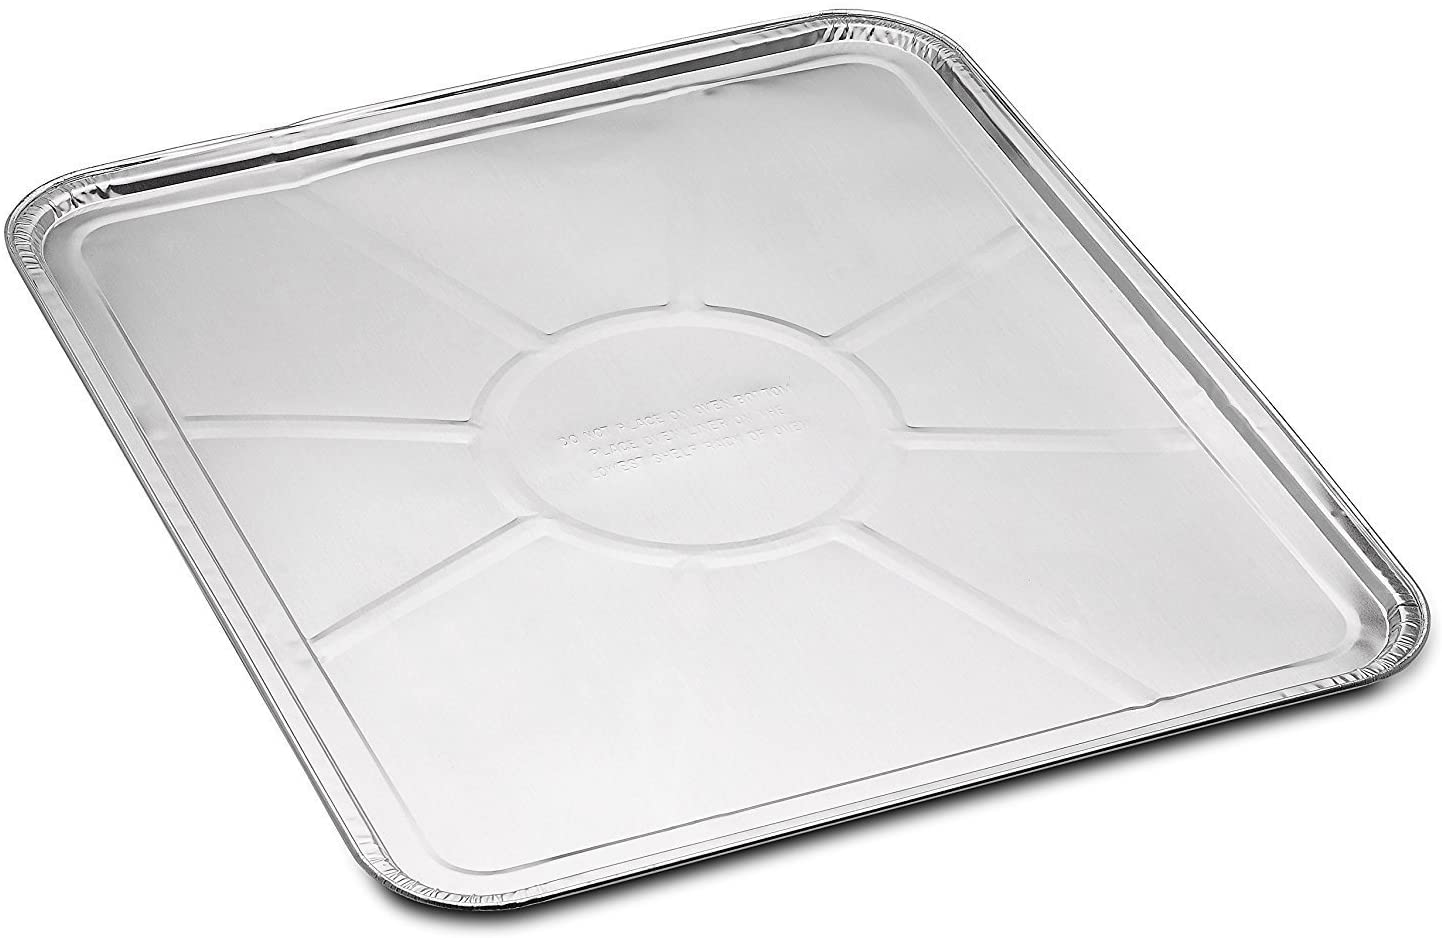 Disposable Foil Oven Liners